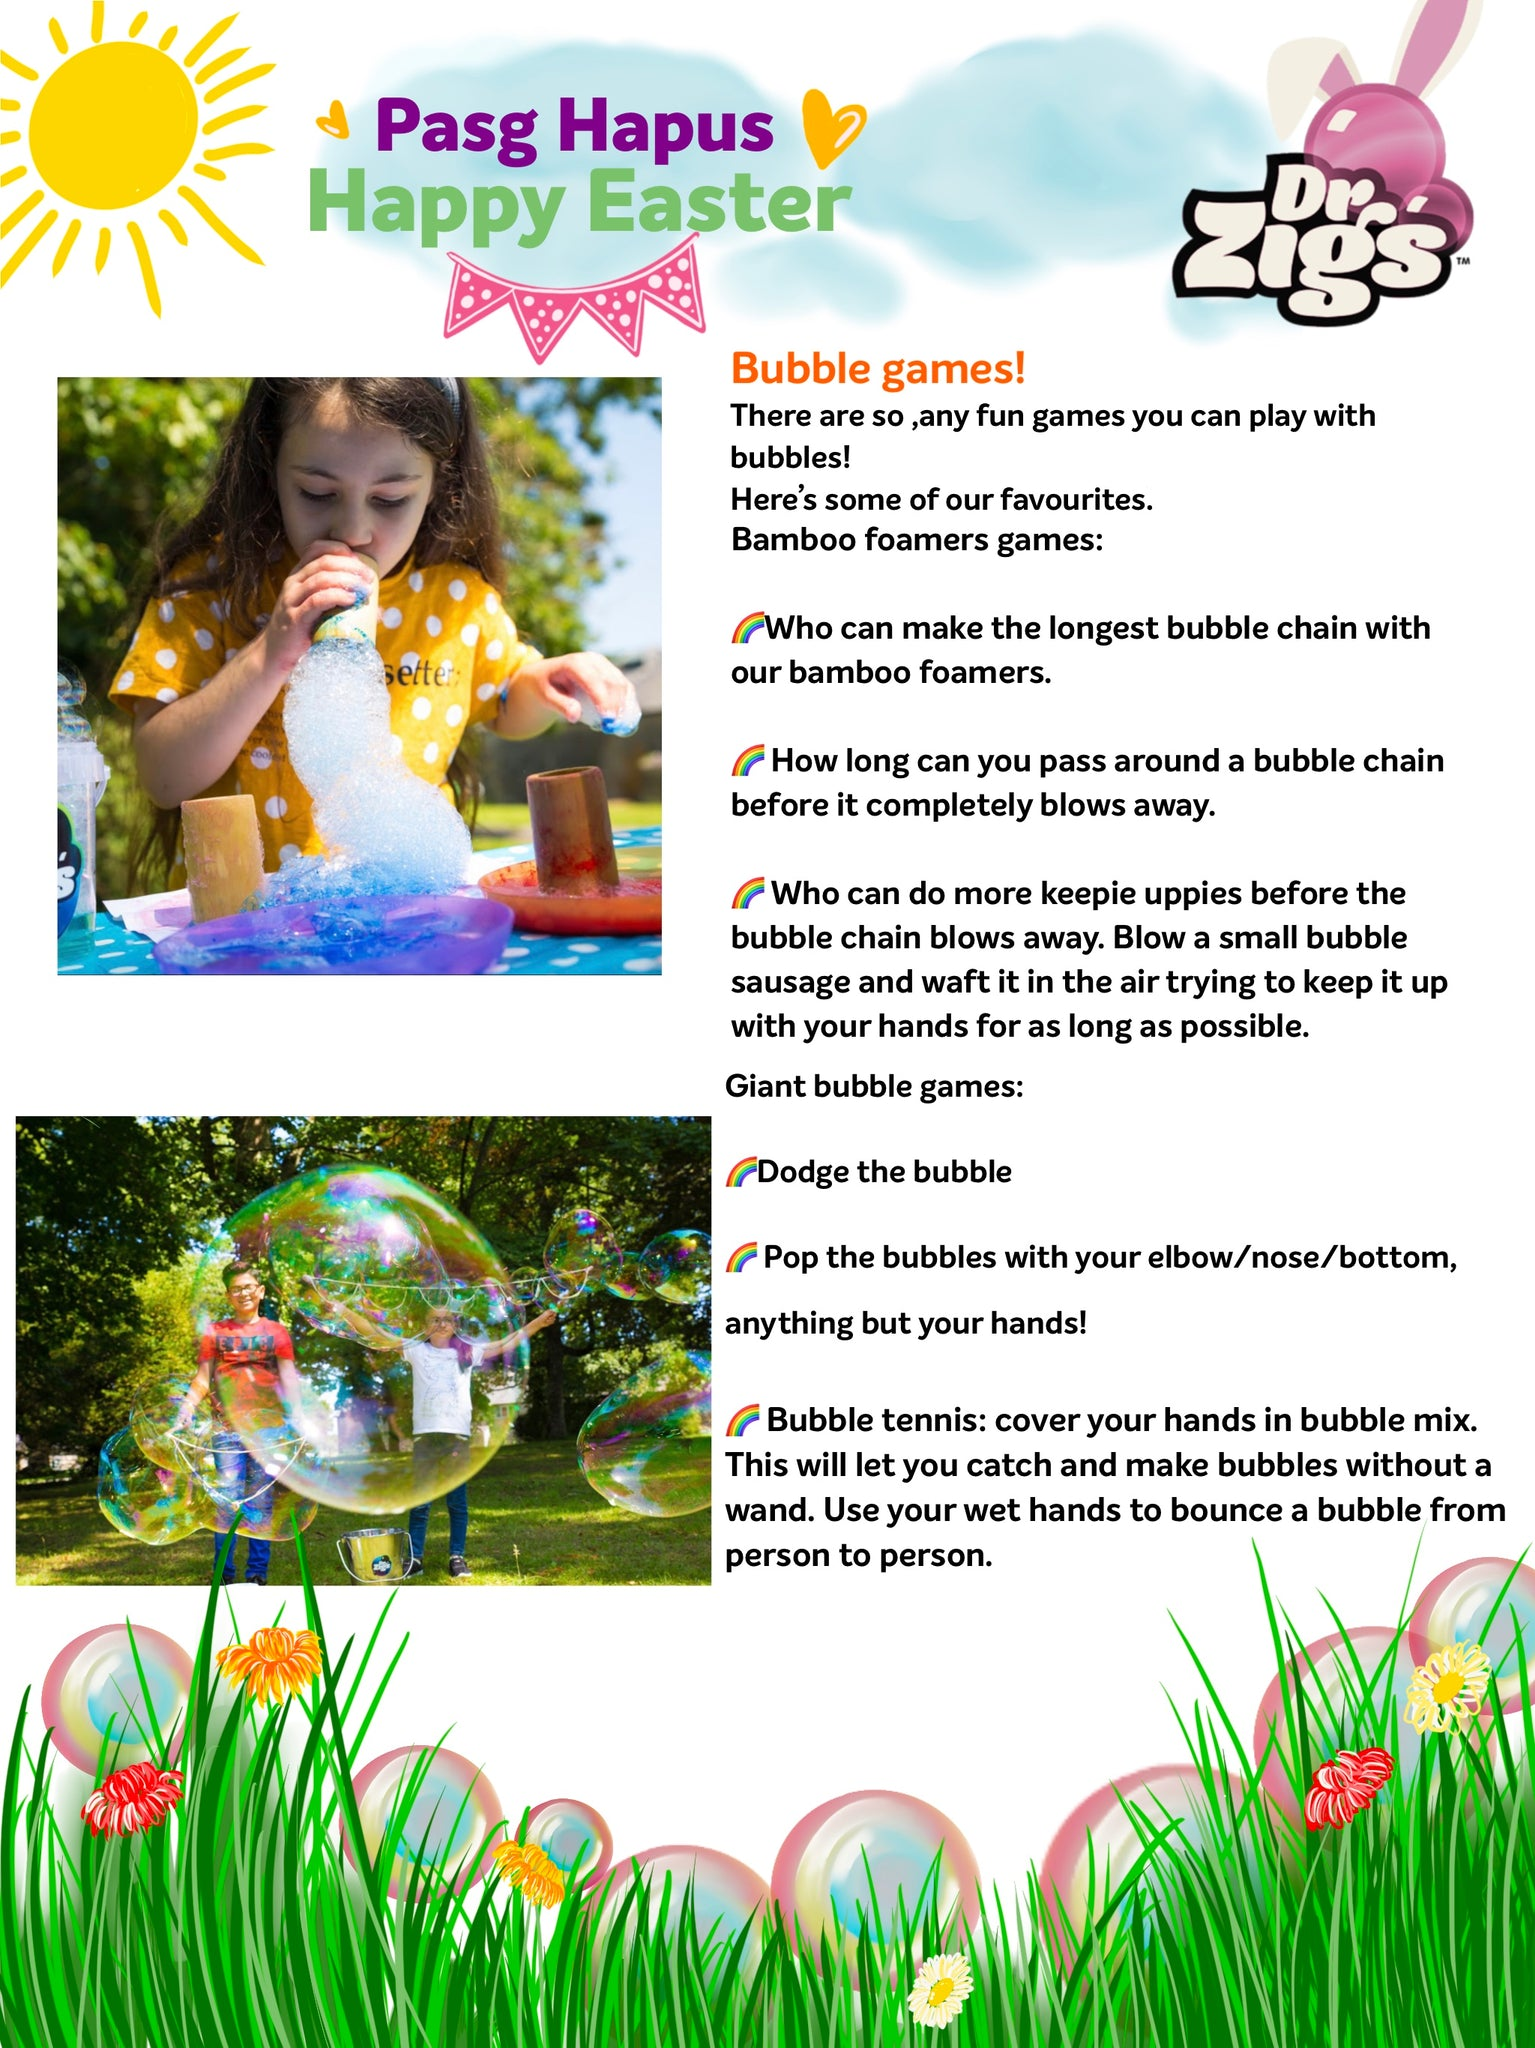 easter activities giant bubbles dr zigs happy fun ideas easter egg hunt eco friendly biodegradable vegan made in Uk toys soap garden fun 3 years old